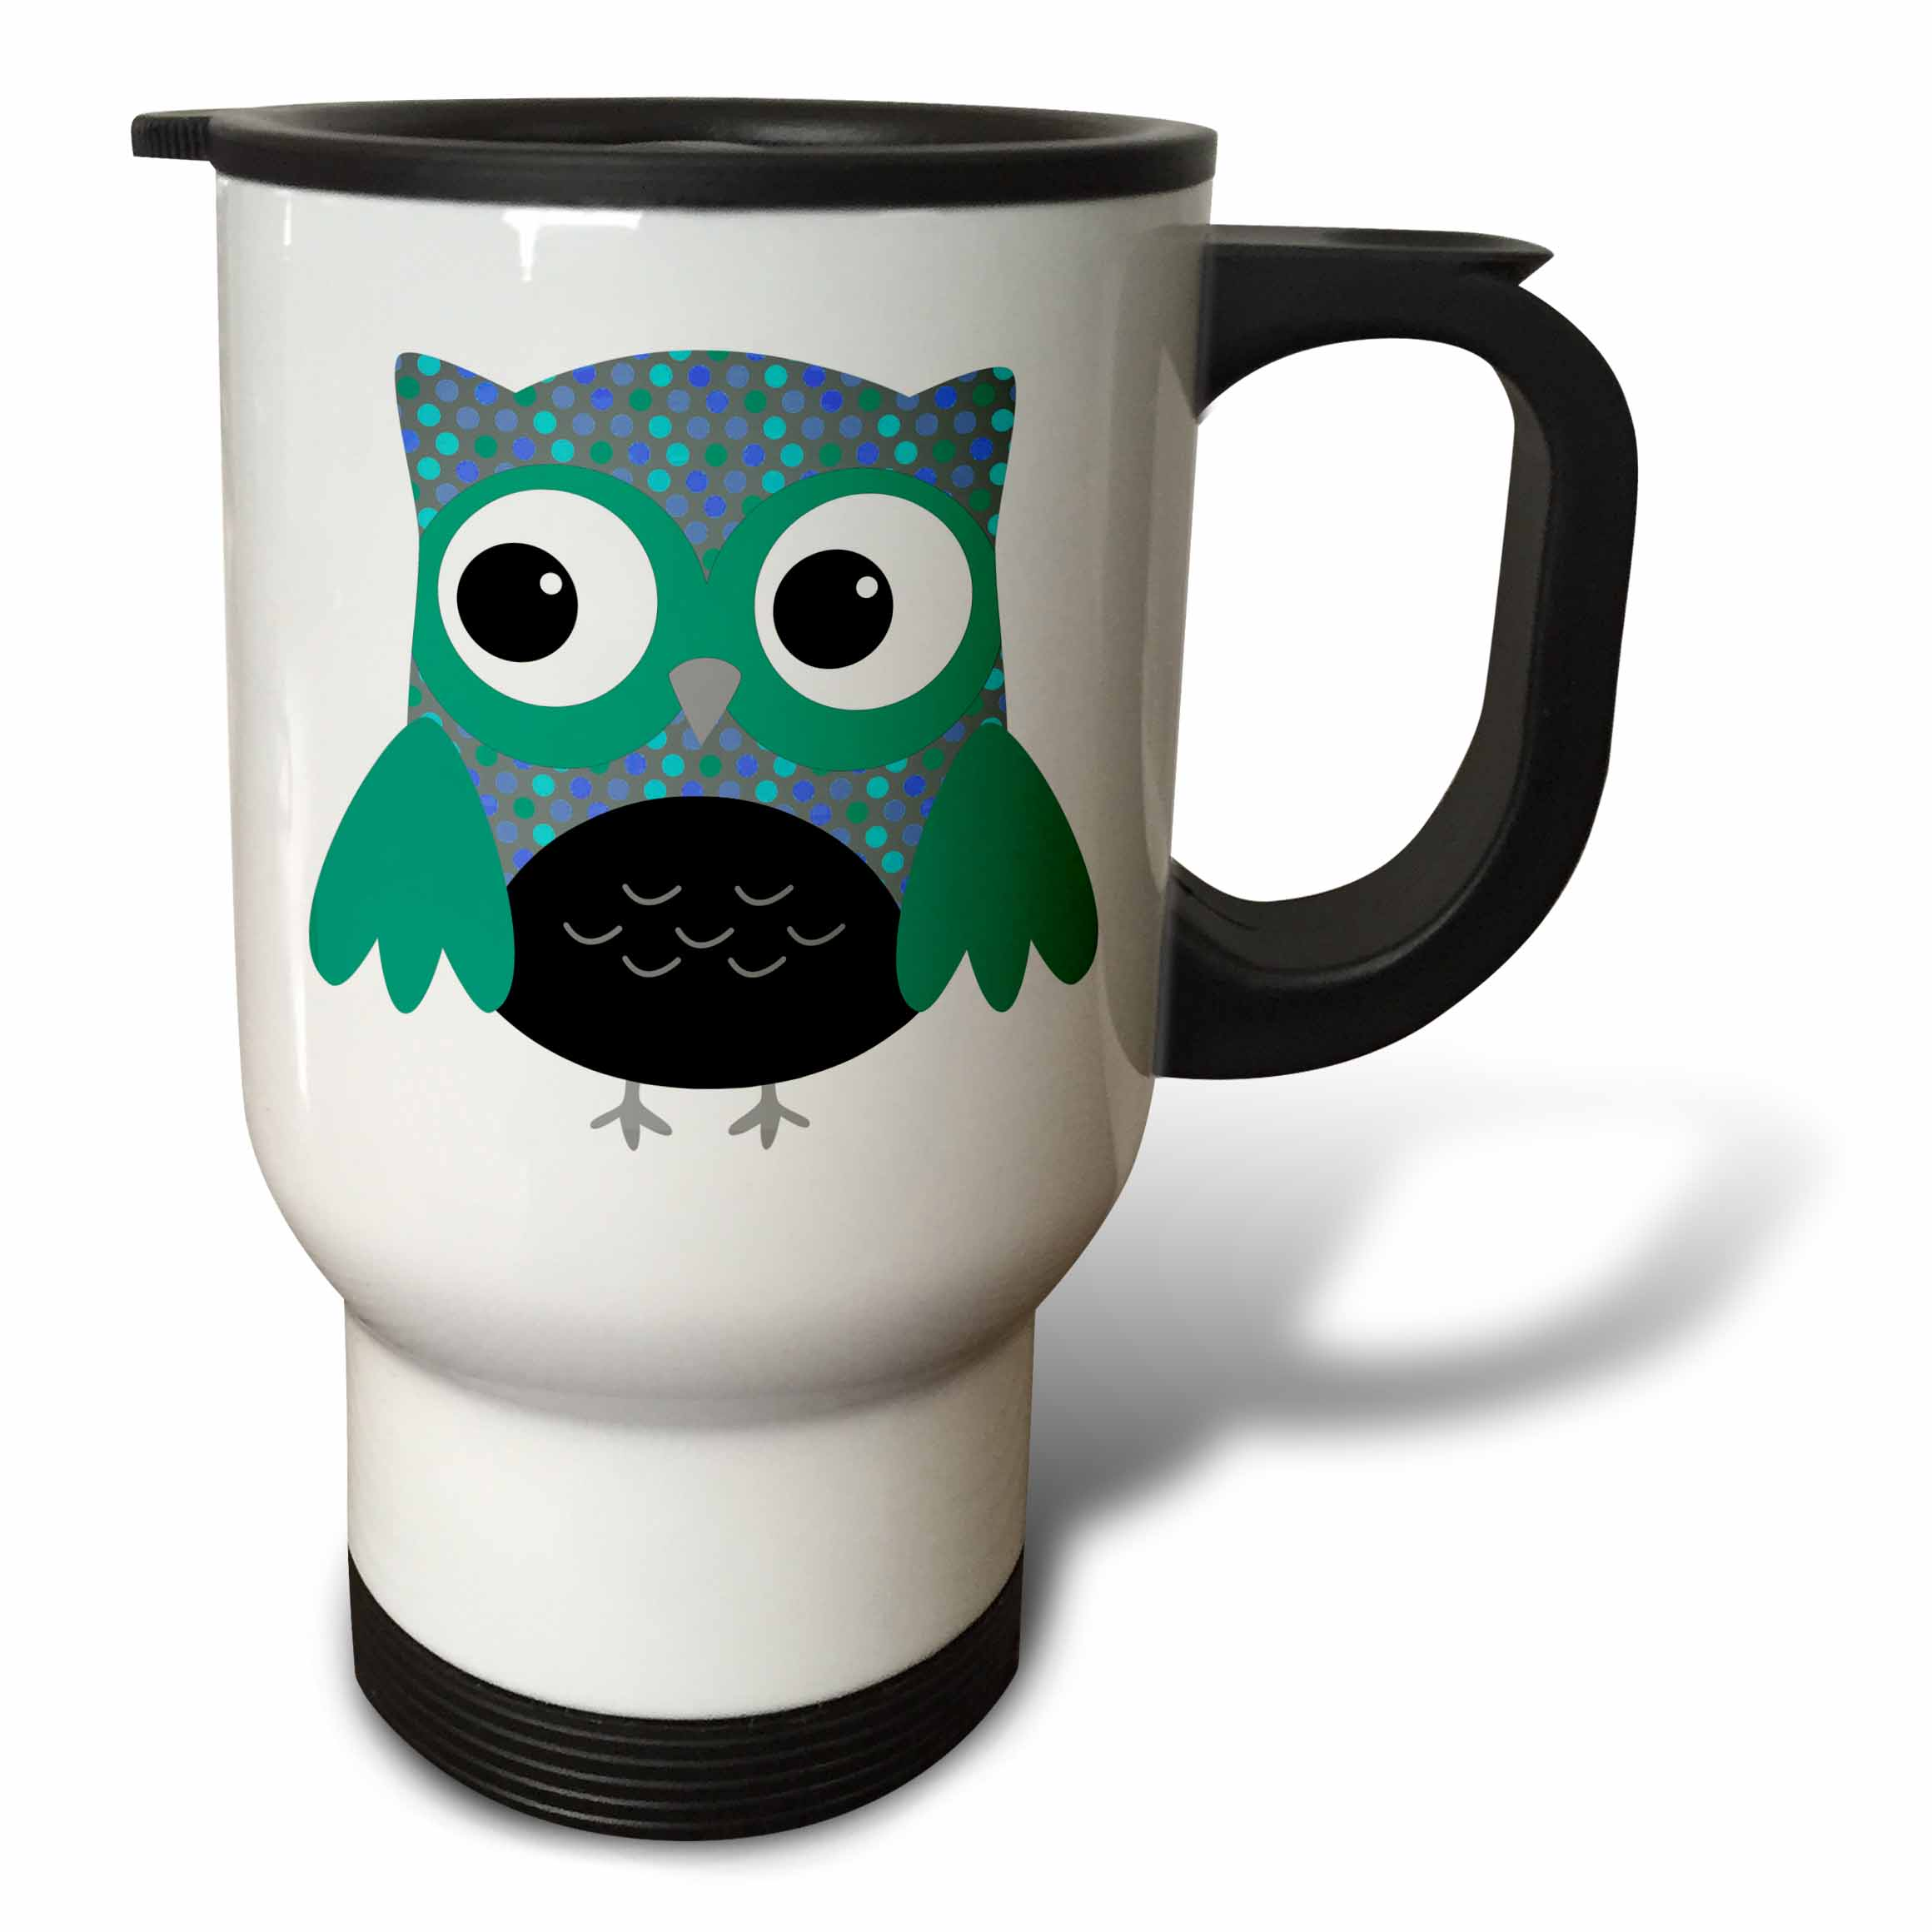 3dRose Cute Blue and Green Polka Dots Owl, Travel Mug, 14oz, Stainless Steel